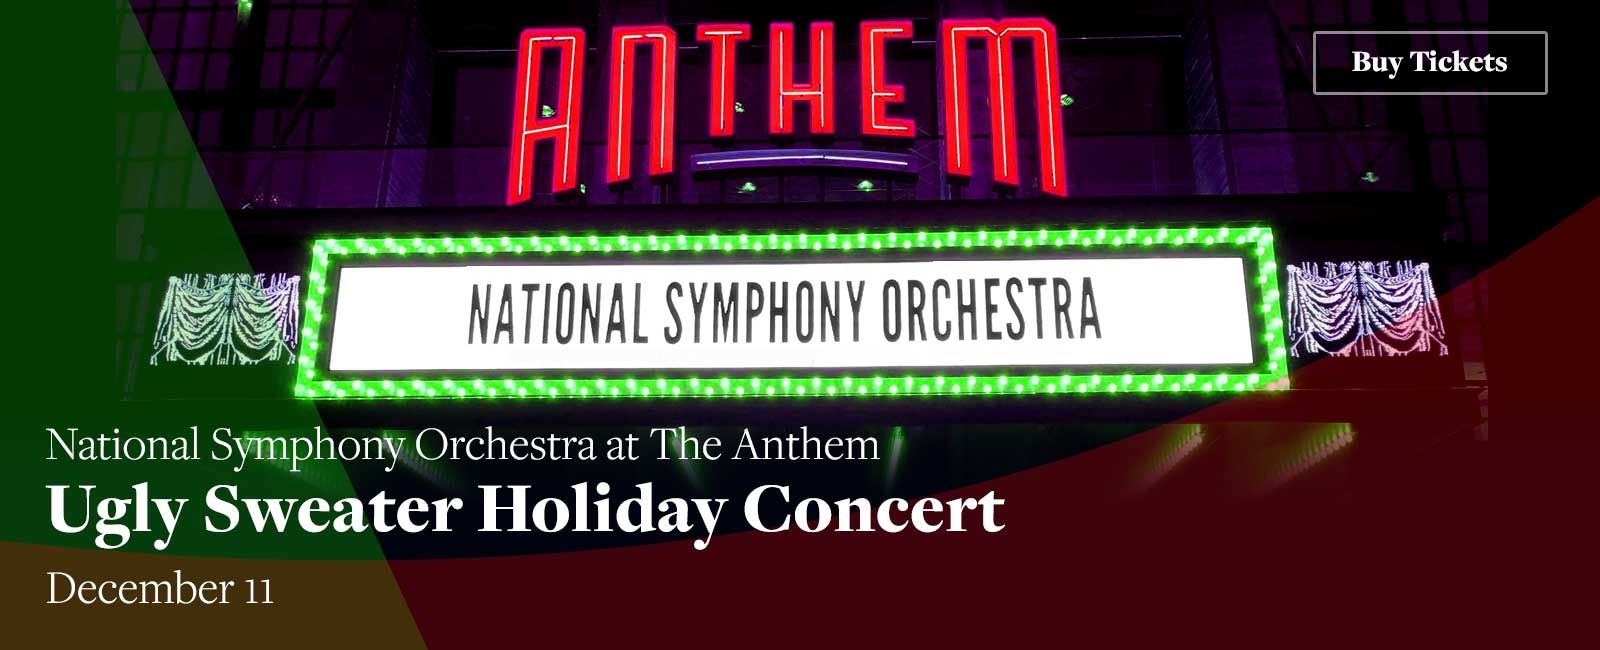 NSO at The Anthem Ugly Sweater Holiday Concert